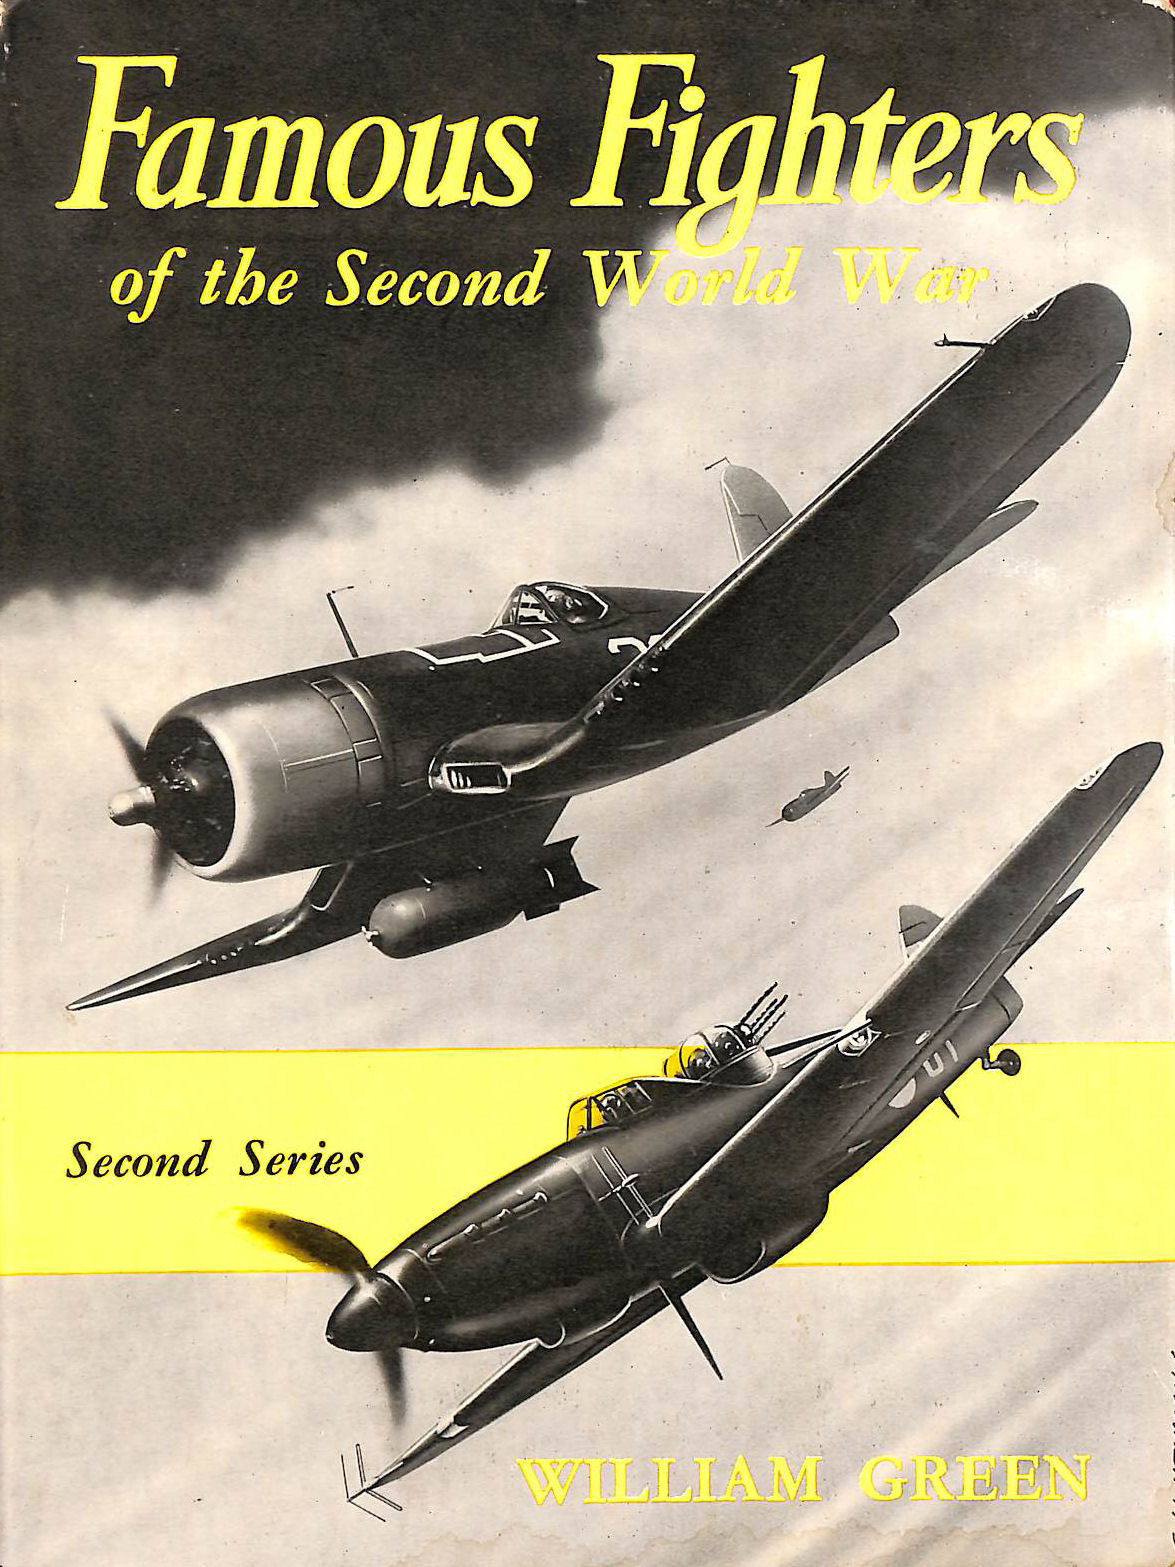 Image for Famous Fighters of the Second World War. Second Series.